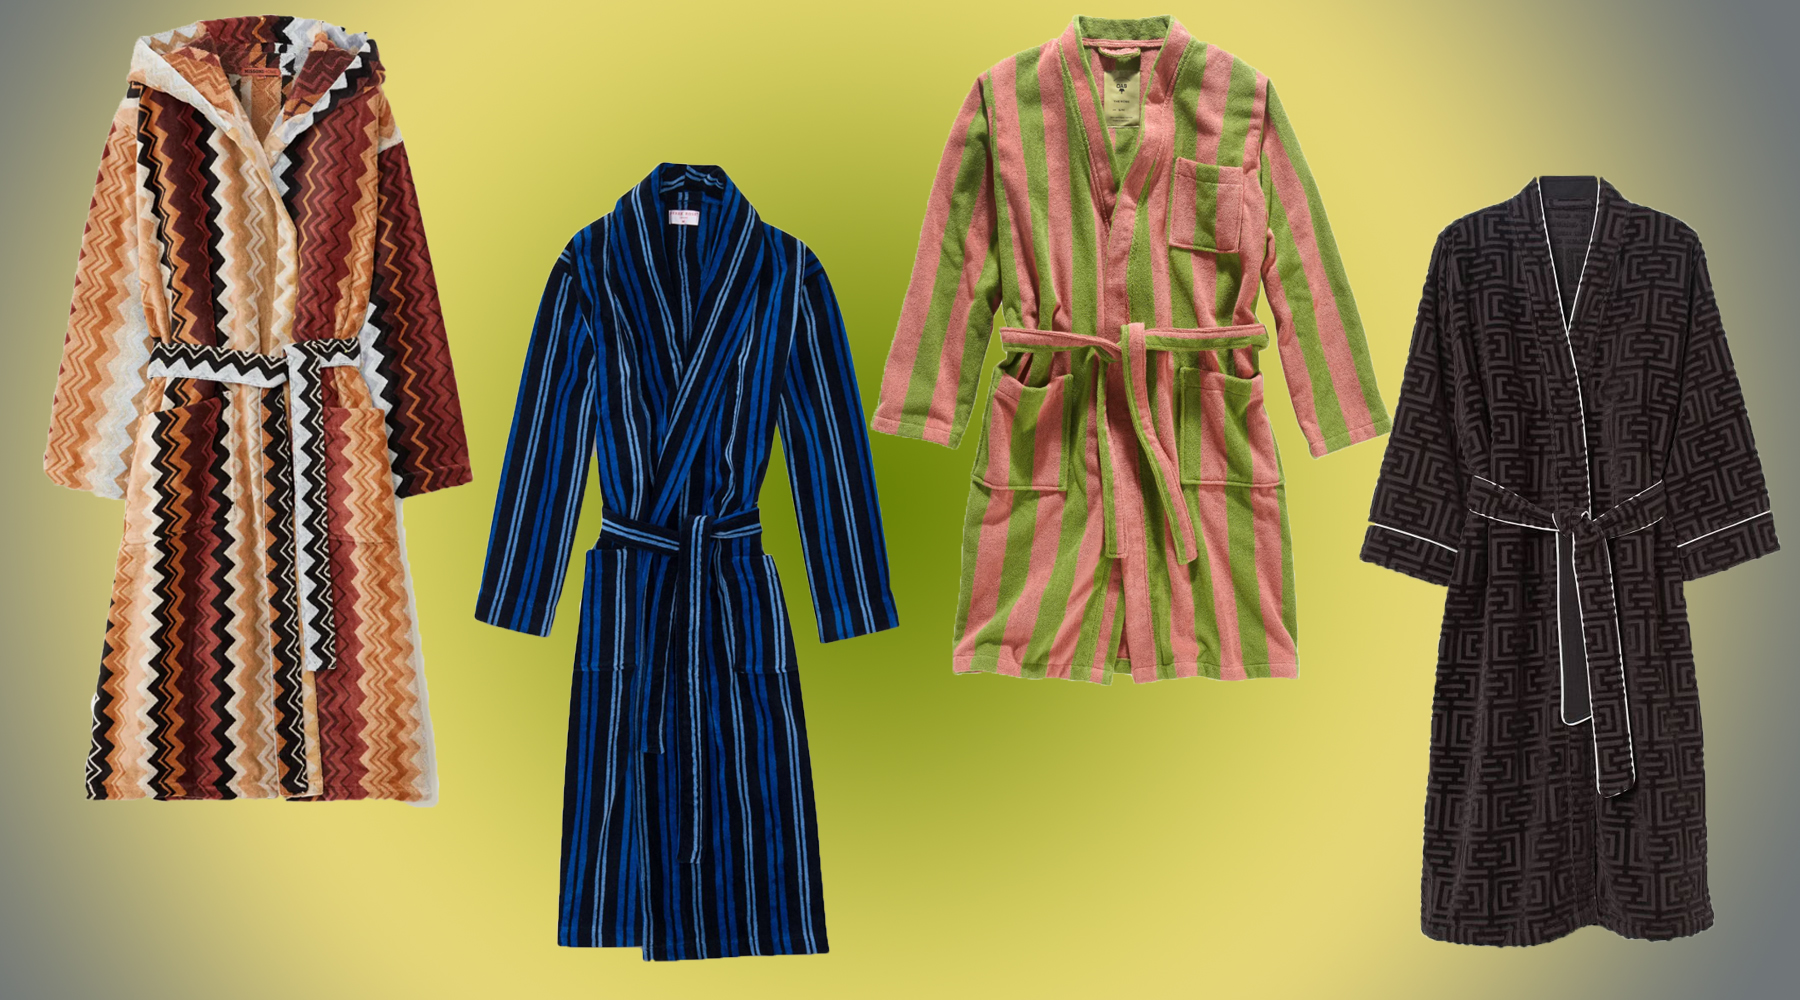 The Best Retro Bathrobes For Adding A Vintage Vibe To Your Quarantine Life